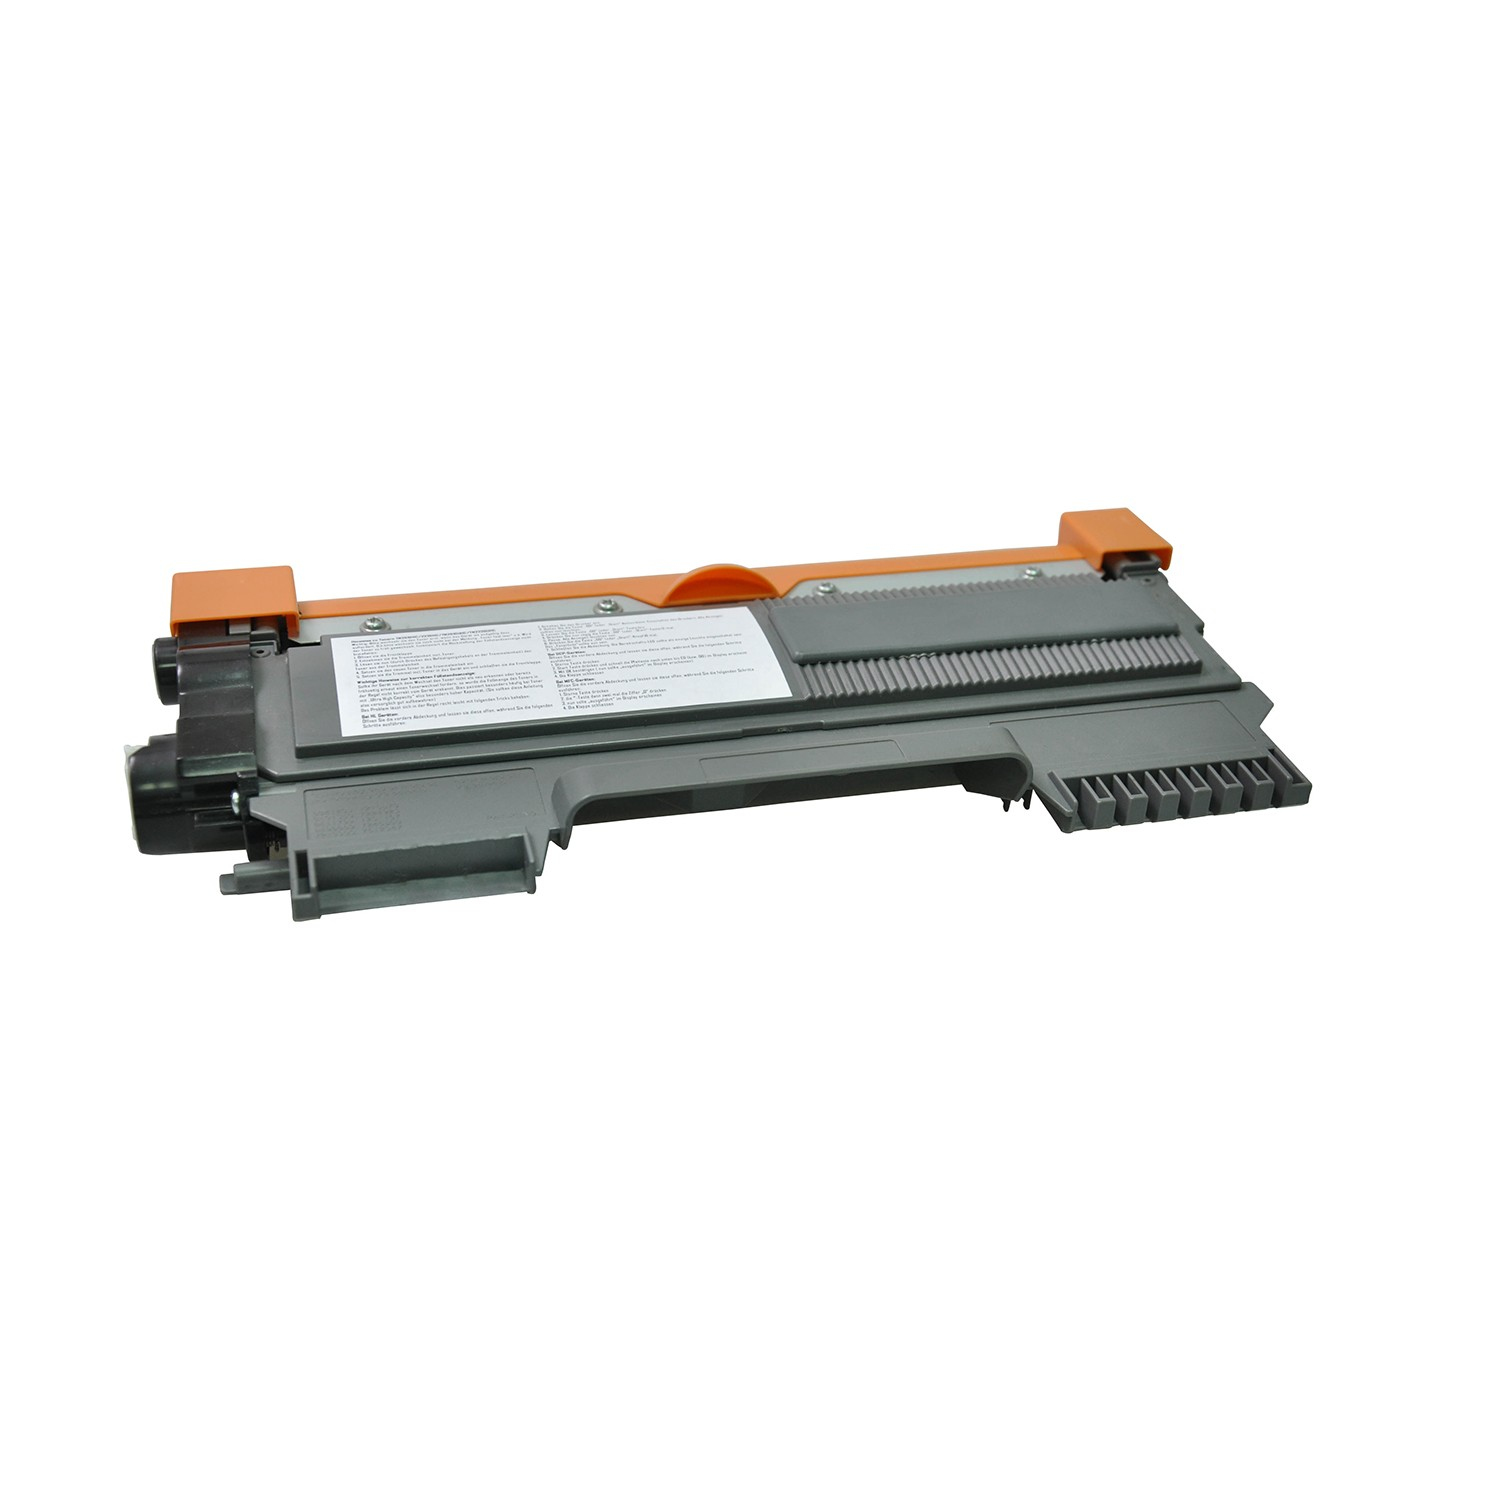 V7 Toner for selected Brother printers - Replacement for OEM cartridge part number TN-2220 extra HIGH YIELD